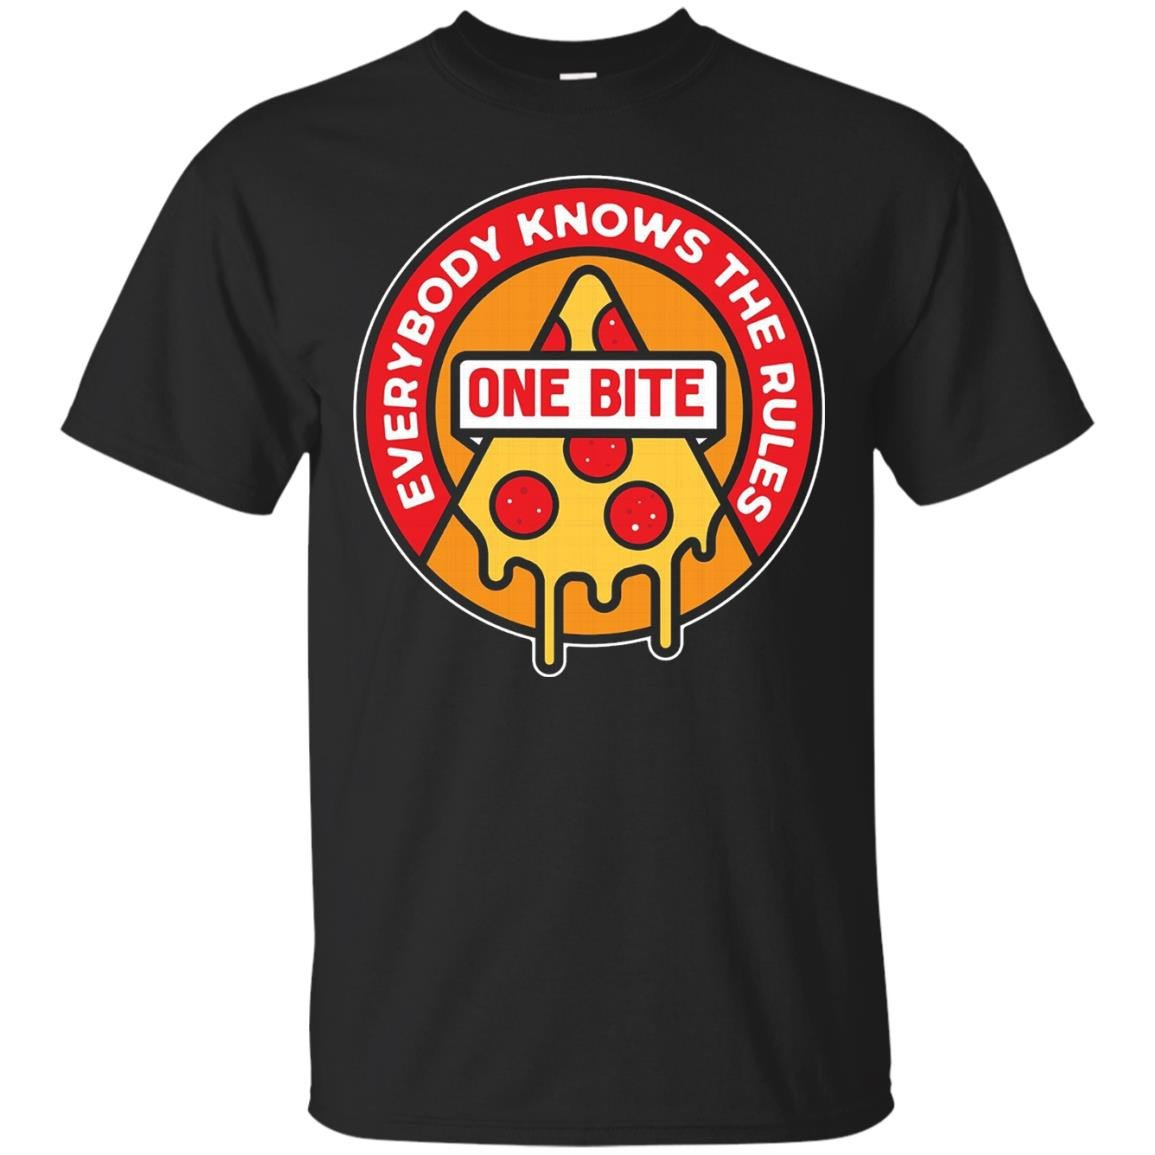 One Bite Everybody knows the Rules T Shirt Pizza - T-Shirt